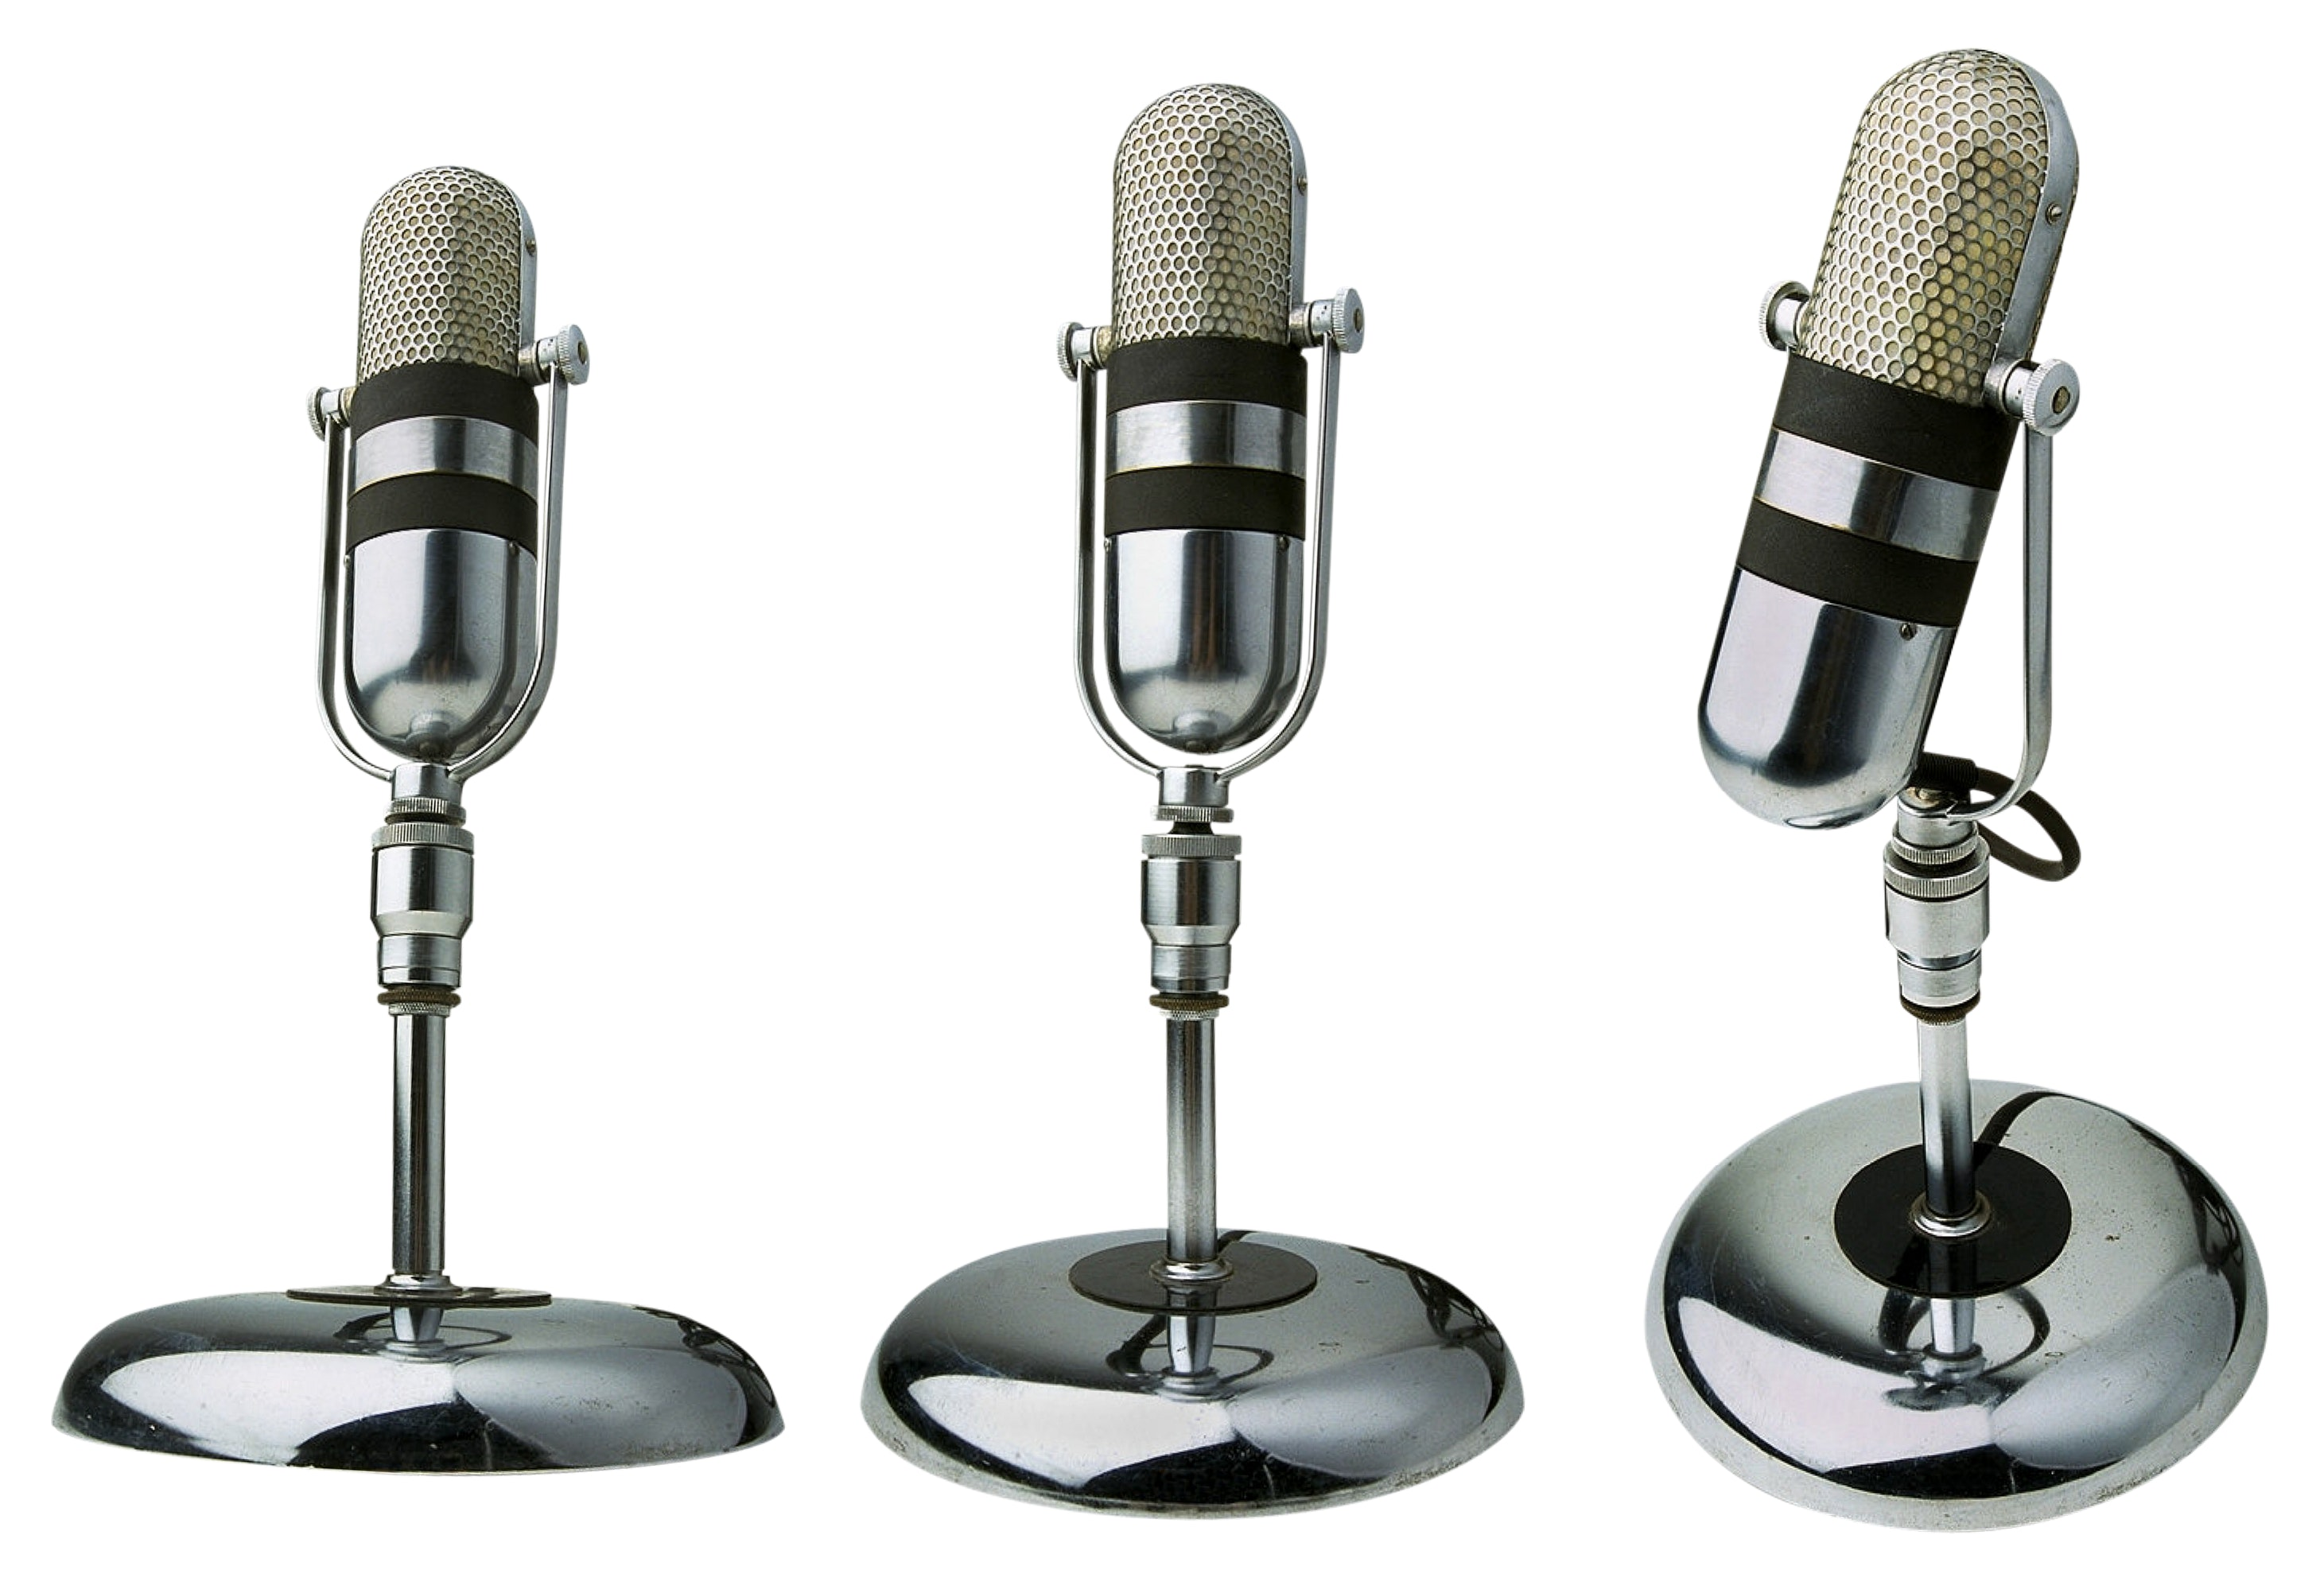 Selecting The Best Microphones For Singing